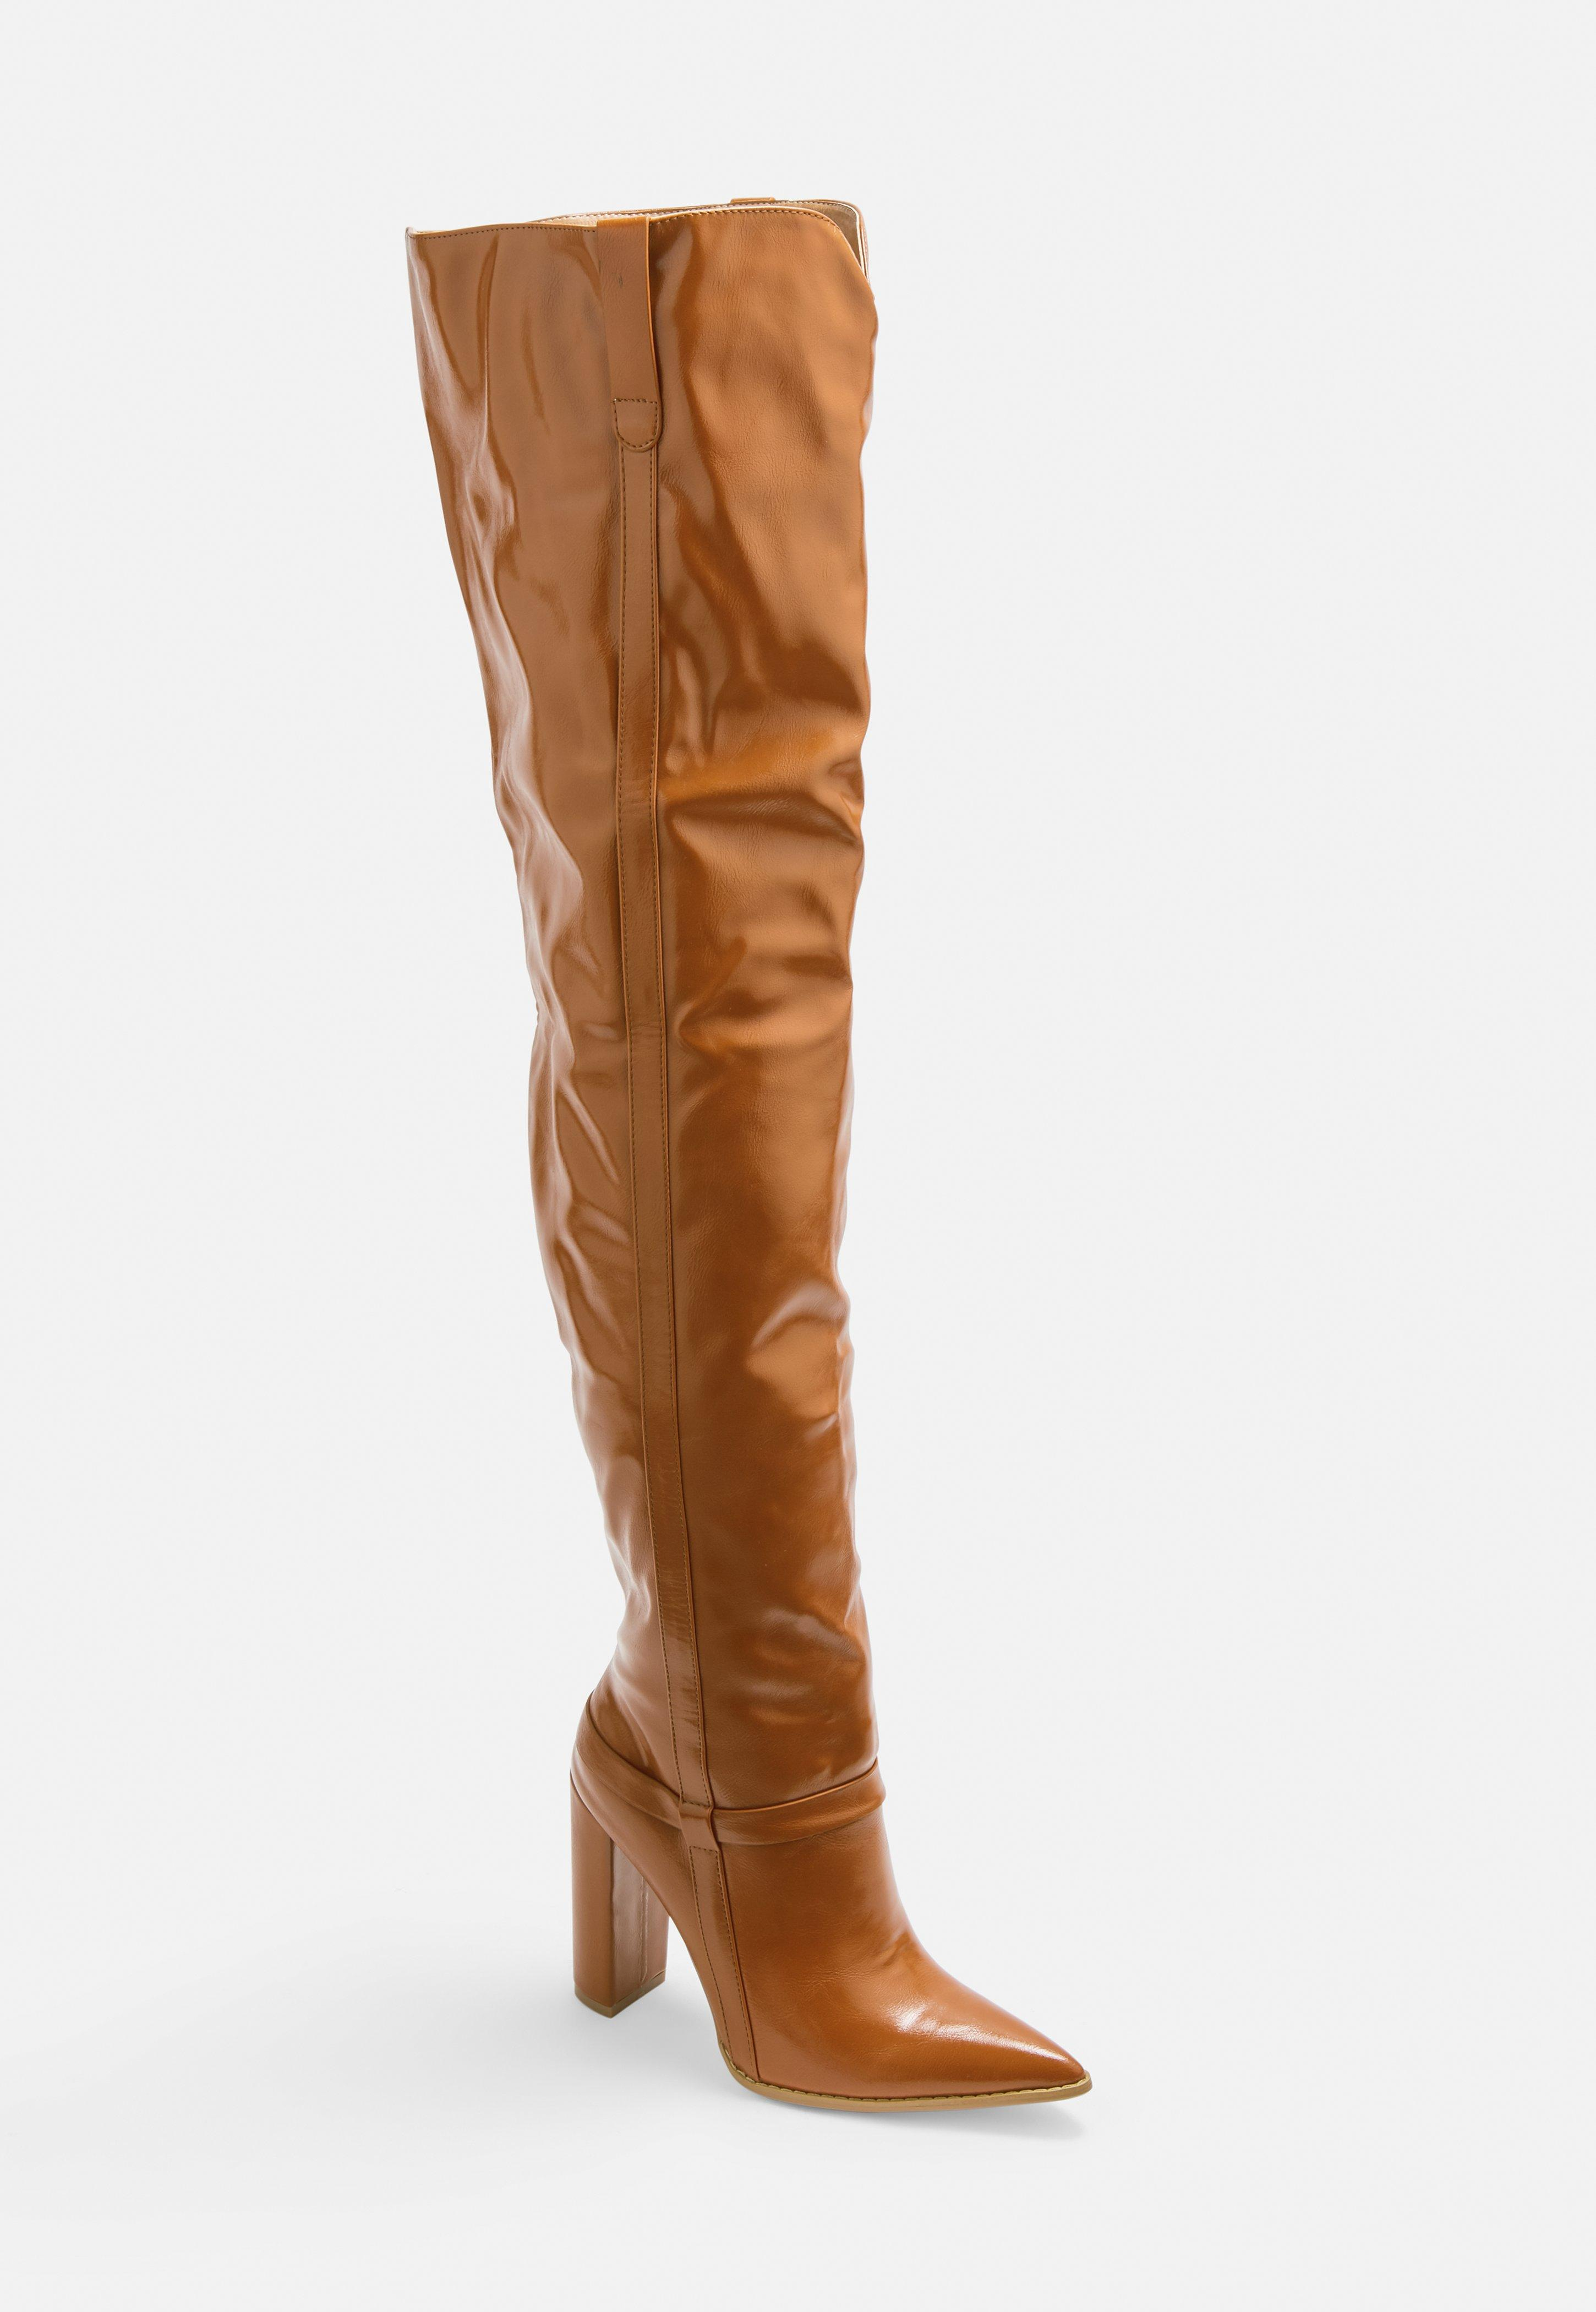 a7616ee33f8d2 Shop Boots for Women Online - Missguided Australia